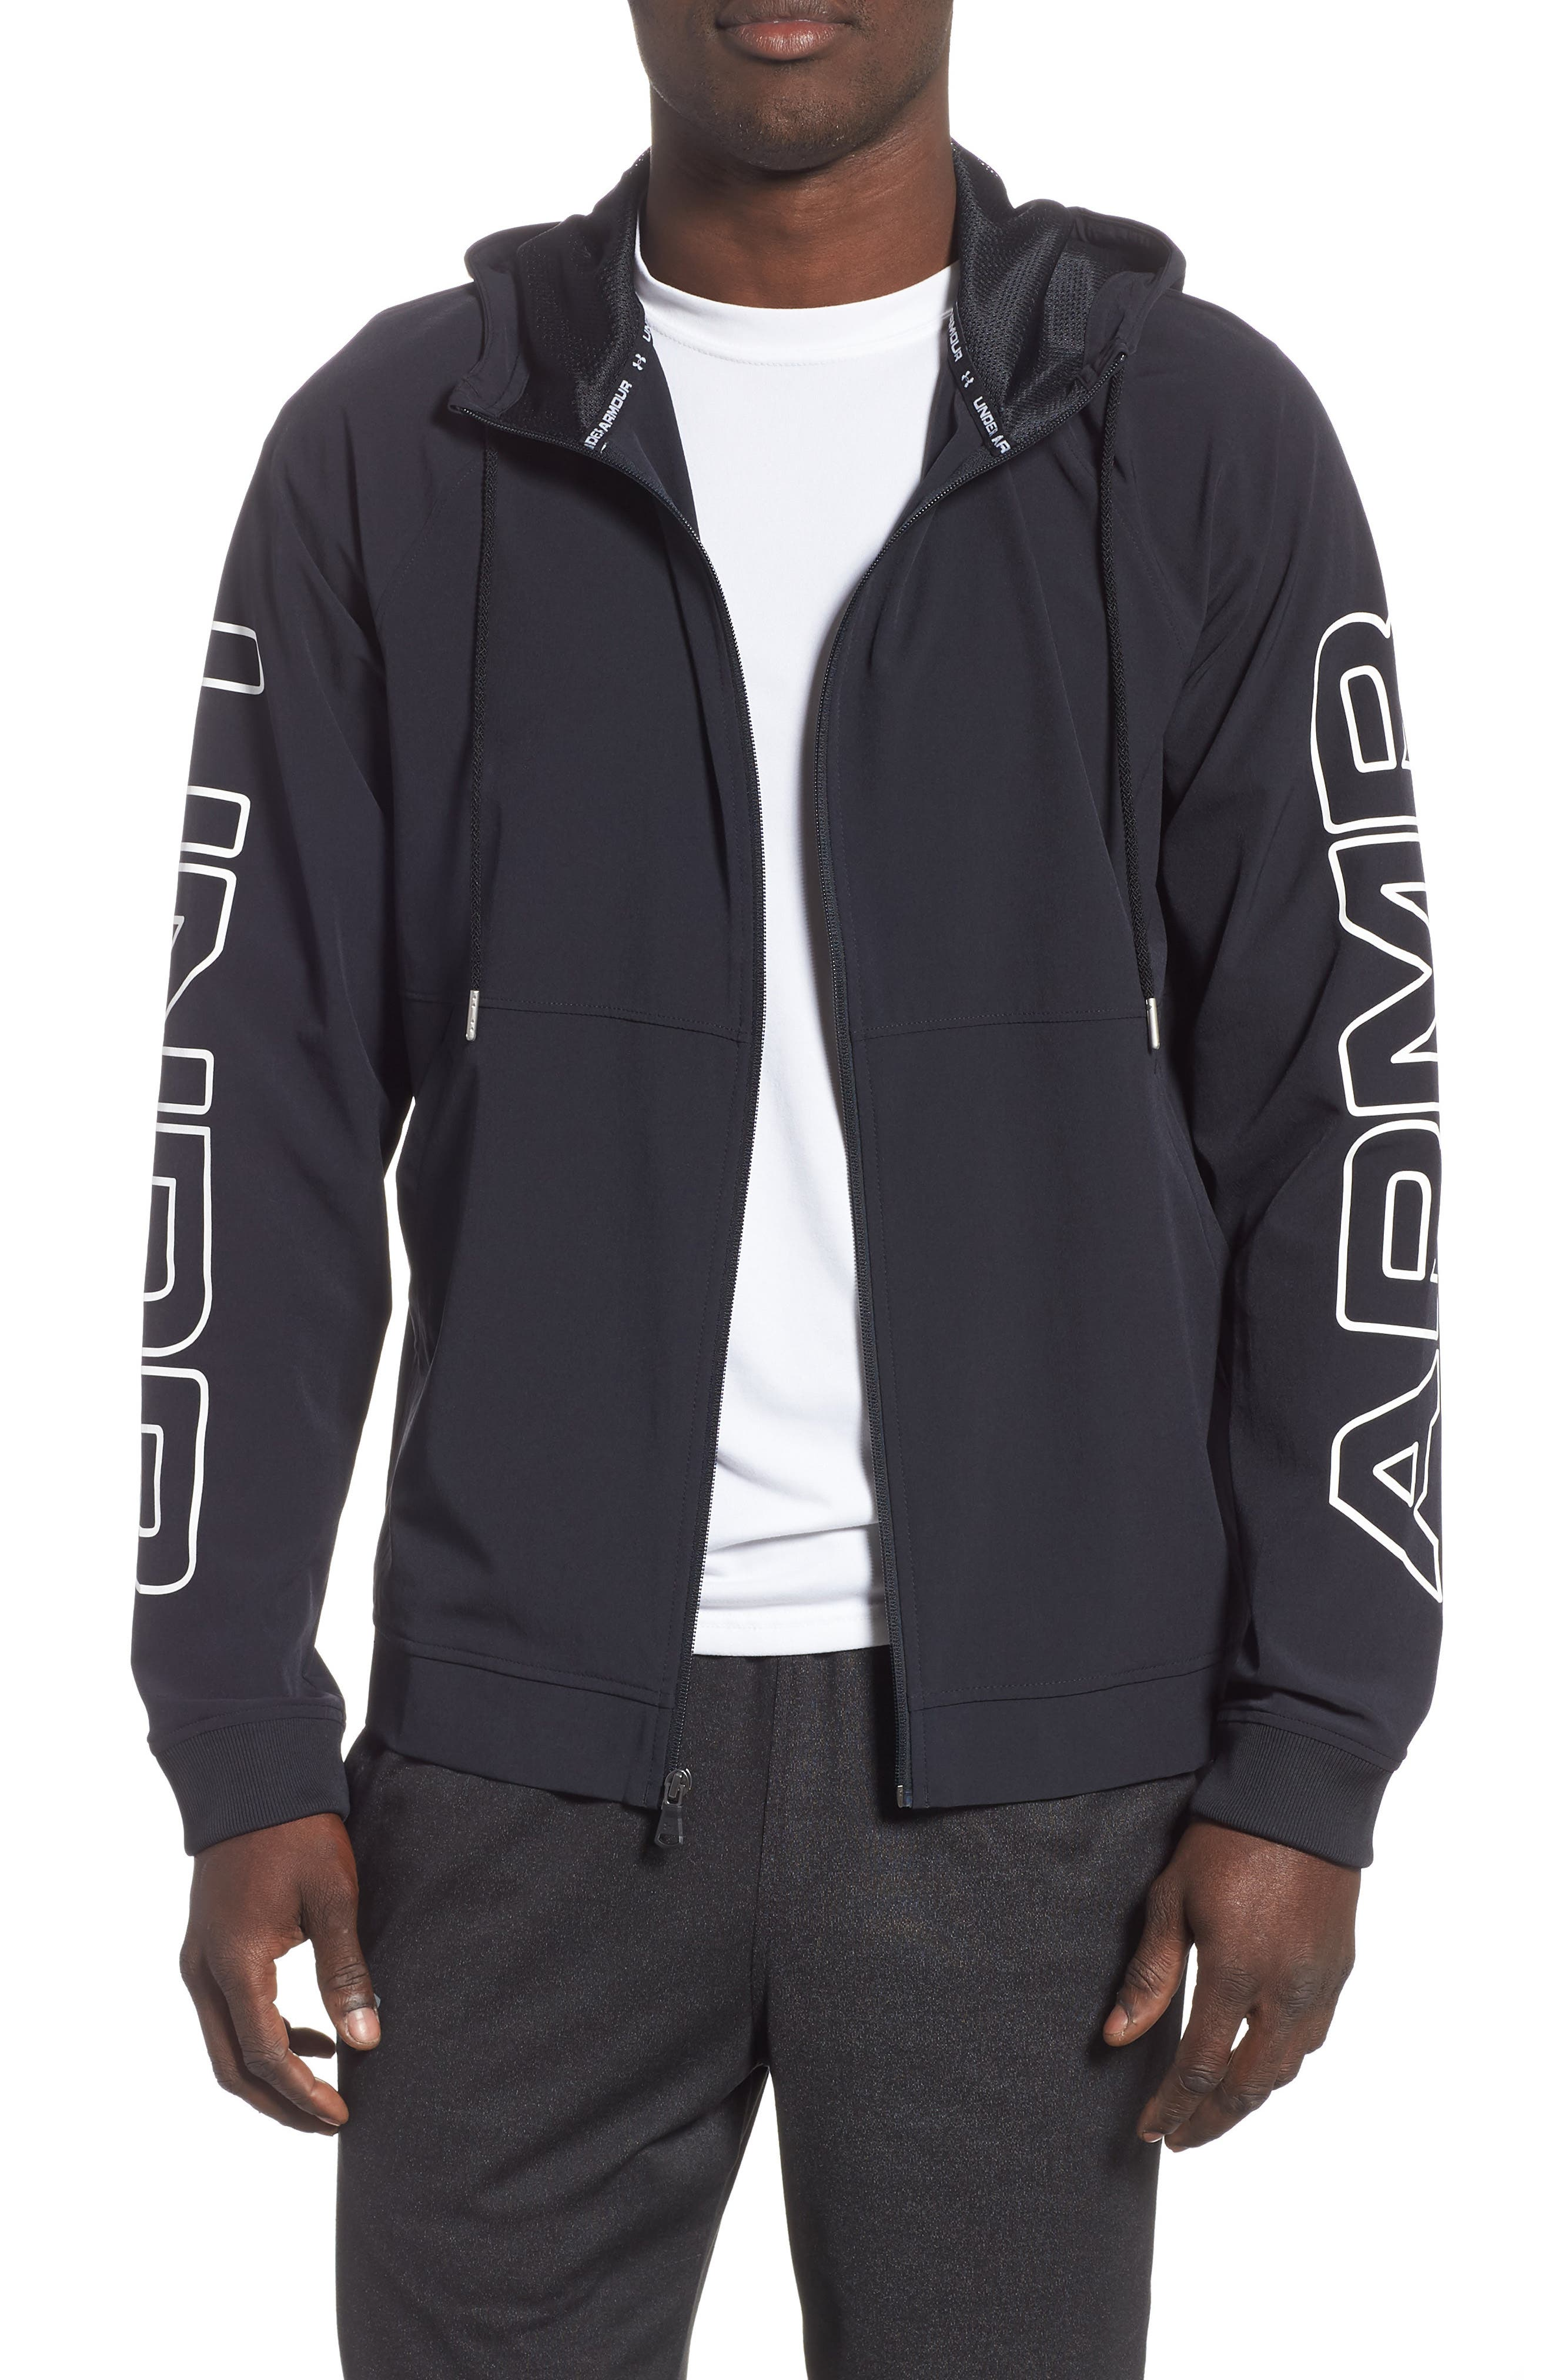 UNDER ARMOUR Baseline Hooded Jacket, Main, color, 001